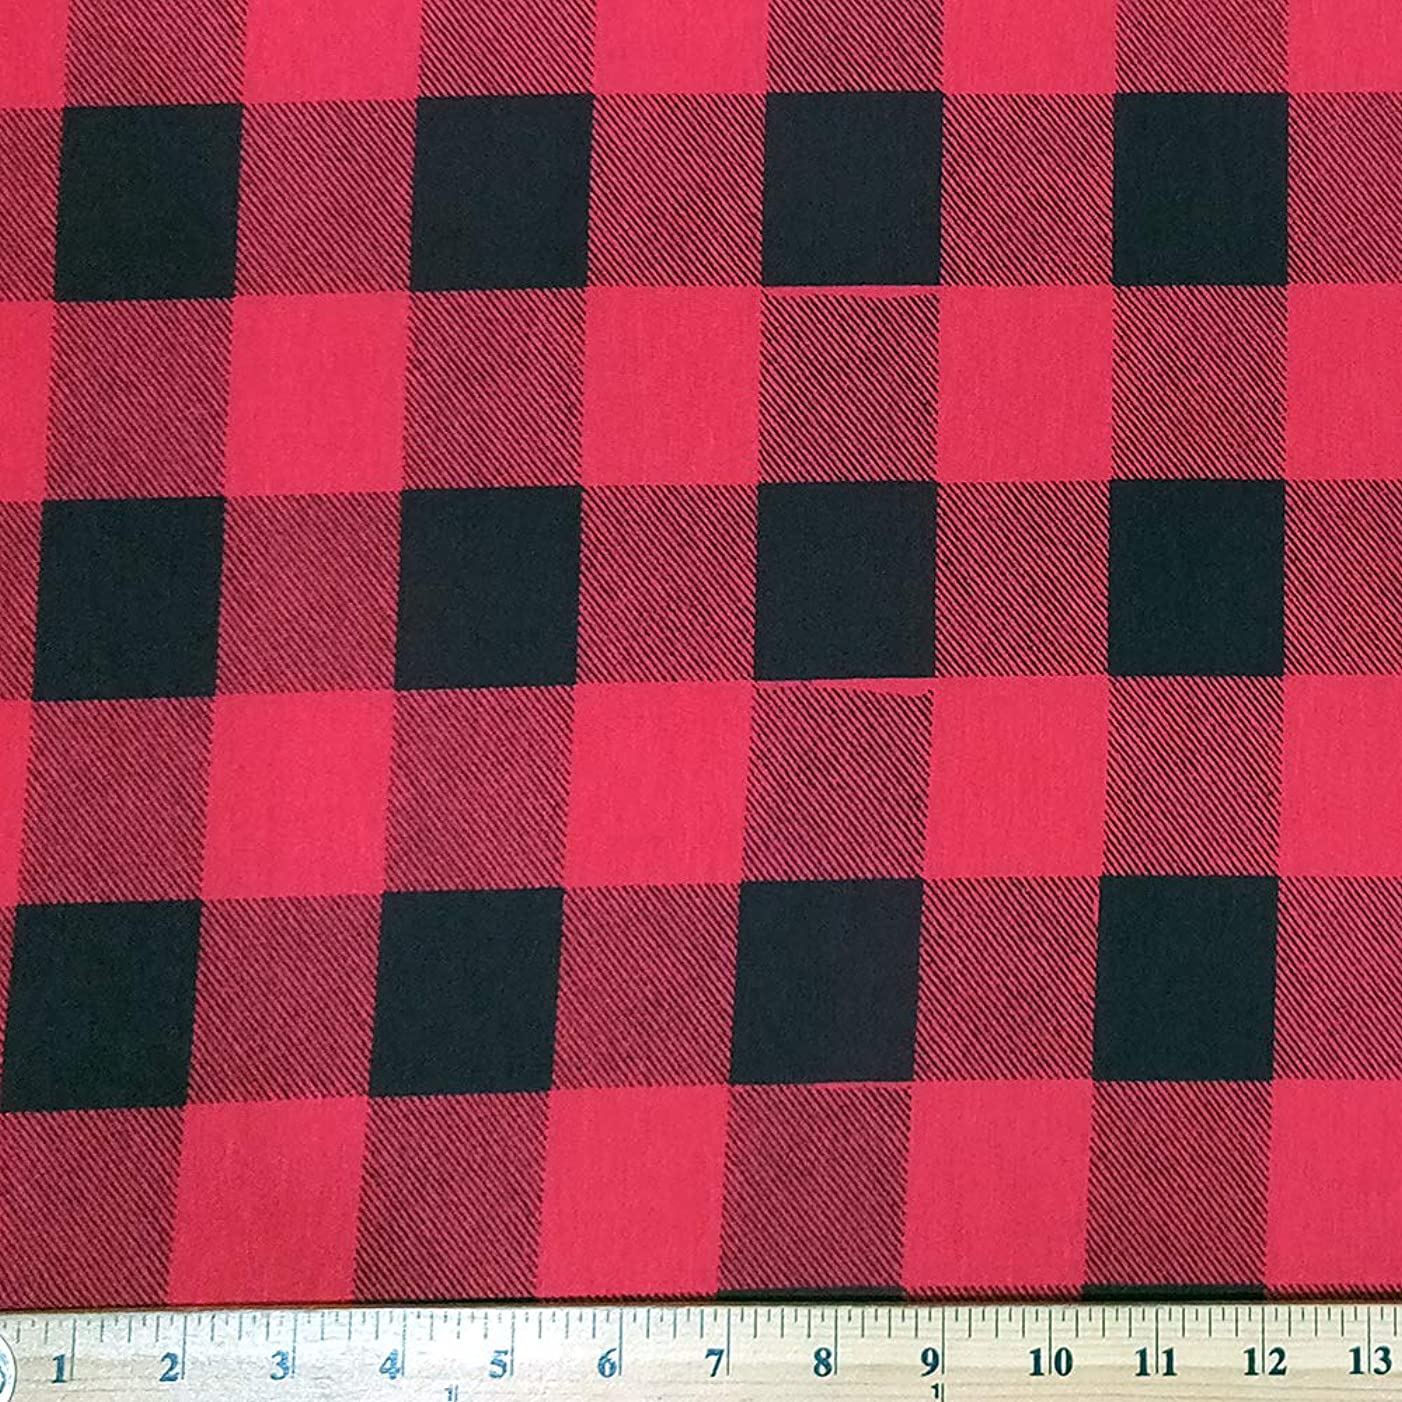 Rayon Spandex Knit Black&Red Stretch Checkers Fabric (2 Yard)